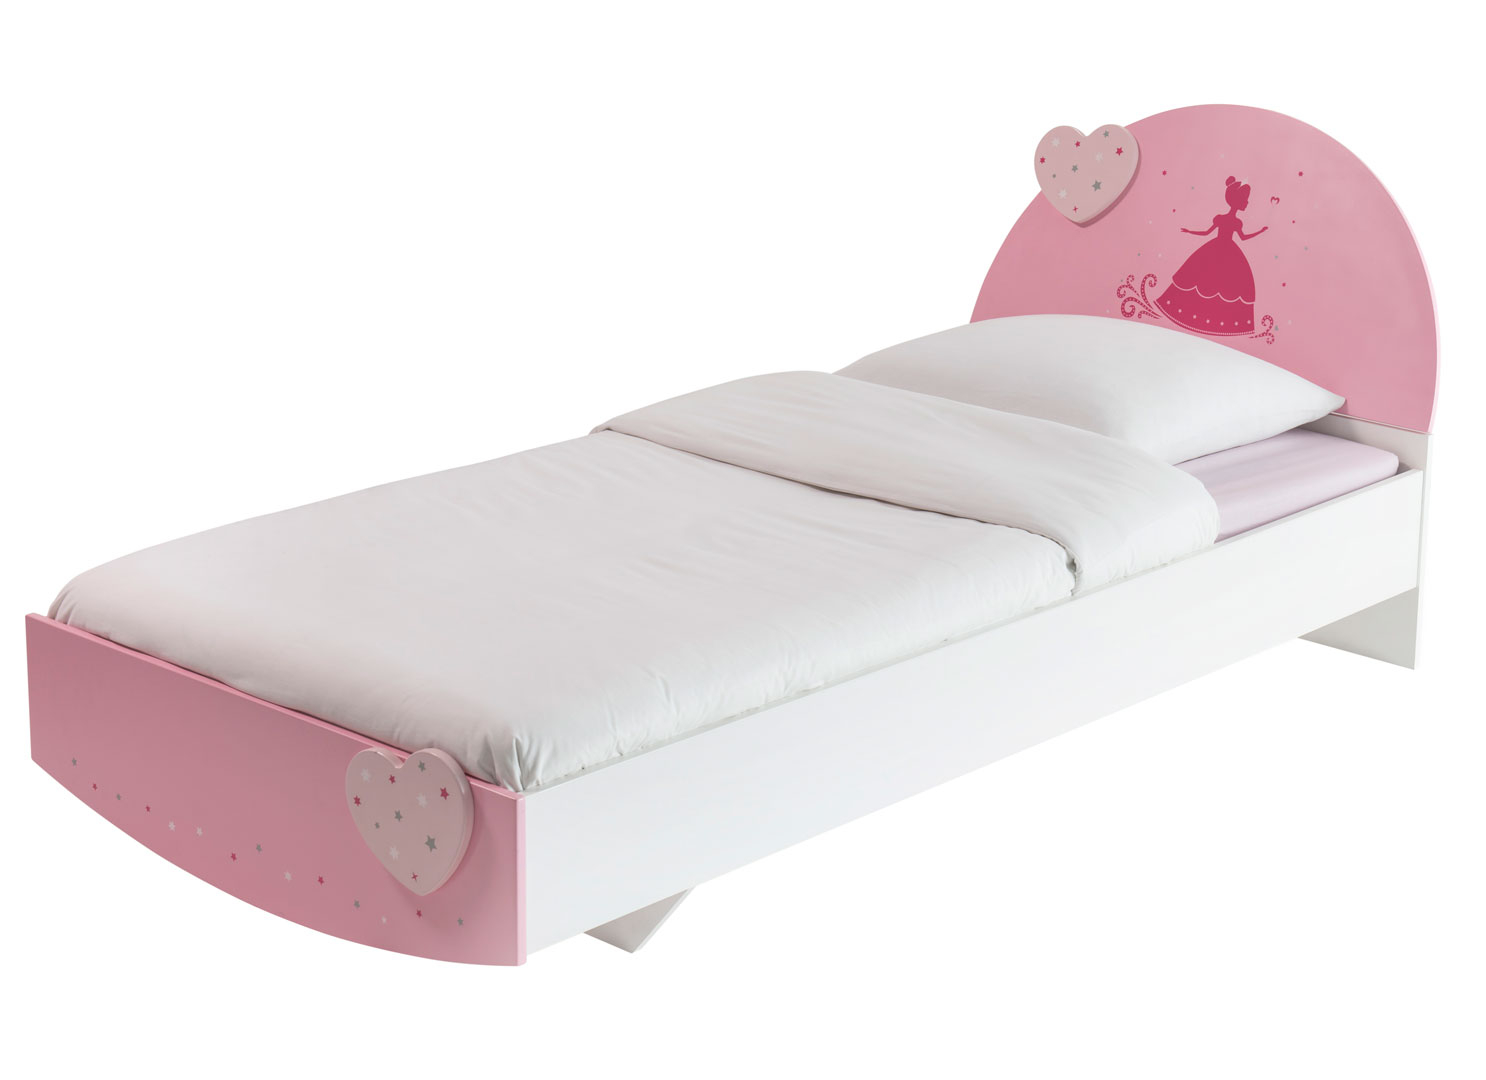 Lit enfant contemporain coloris blanc/rose Cecilia